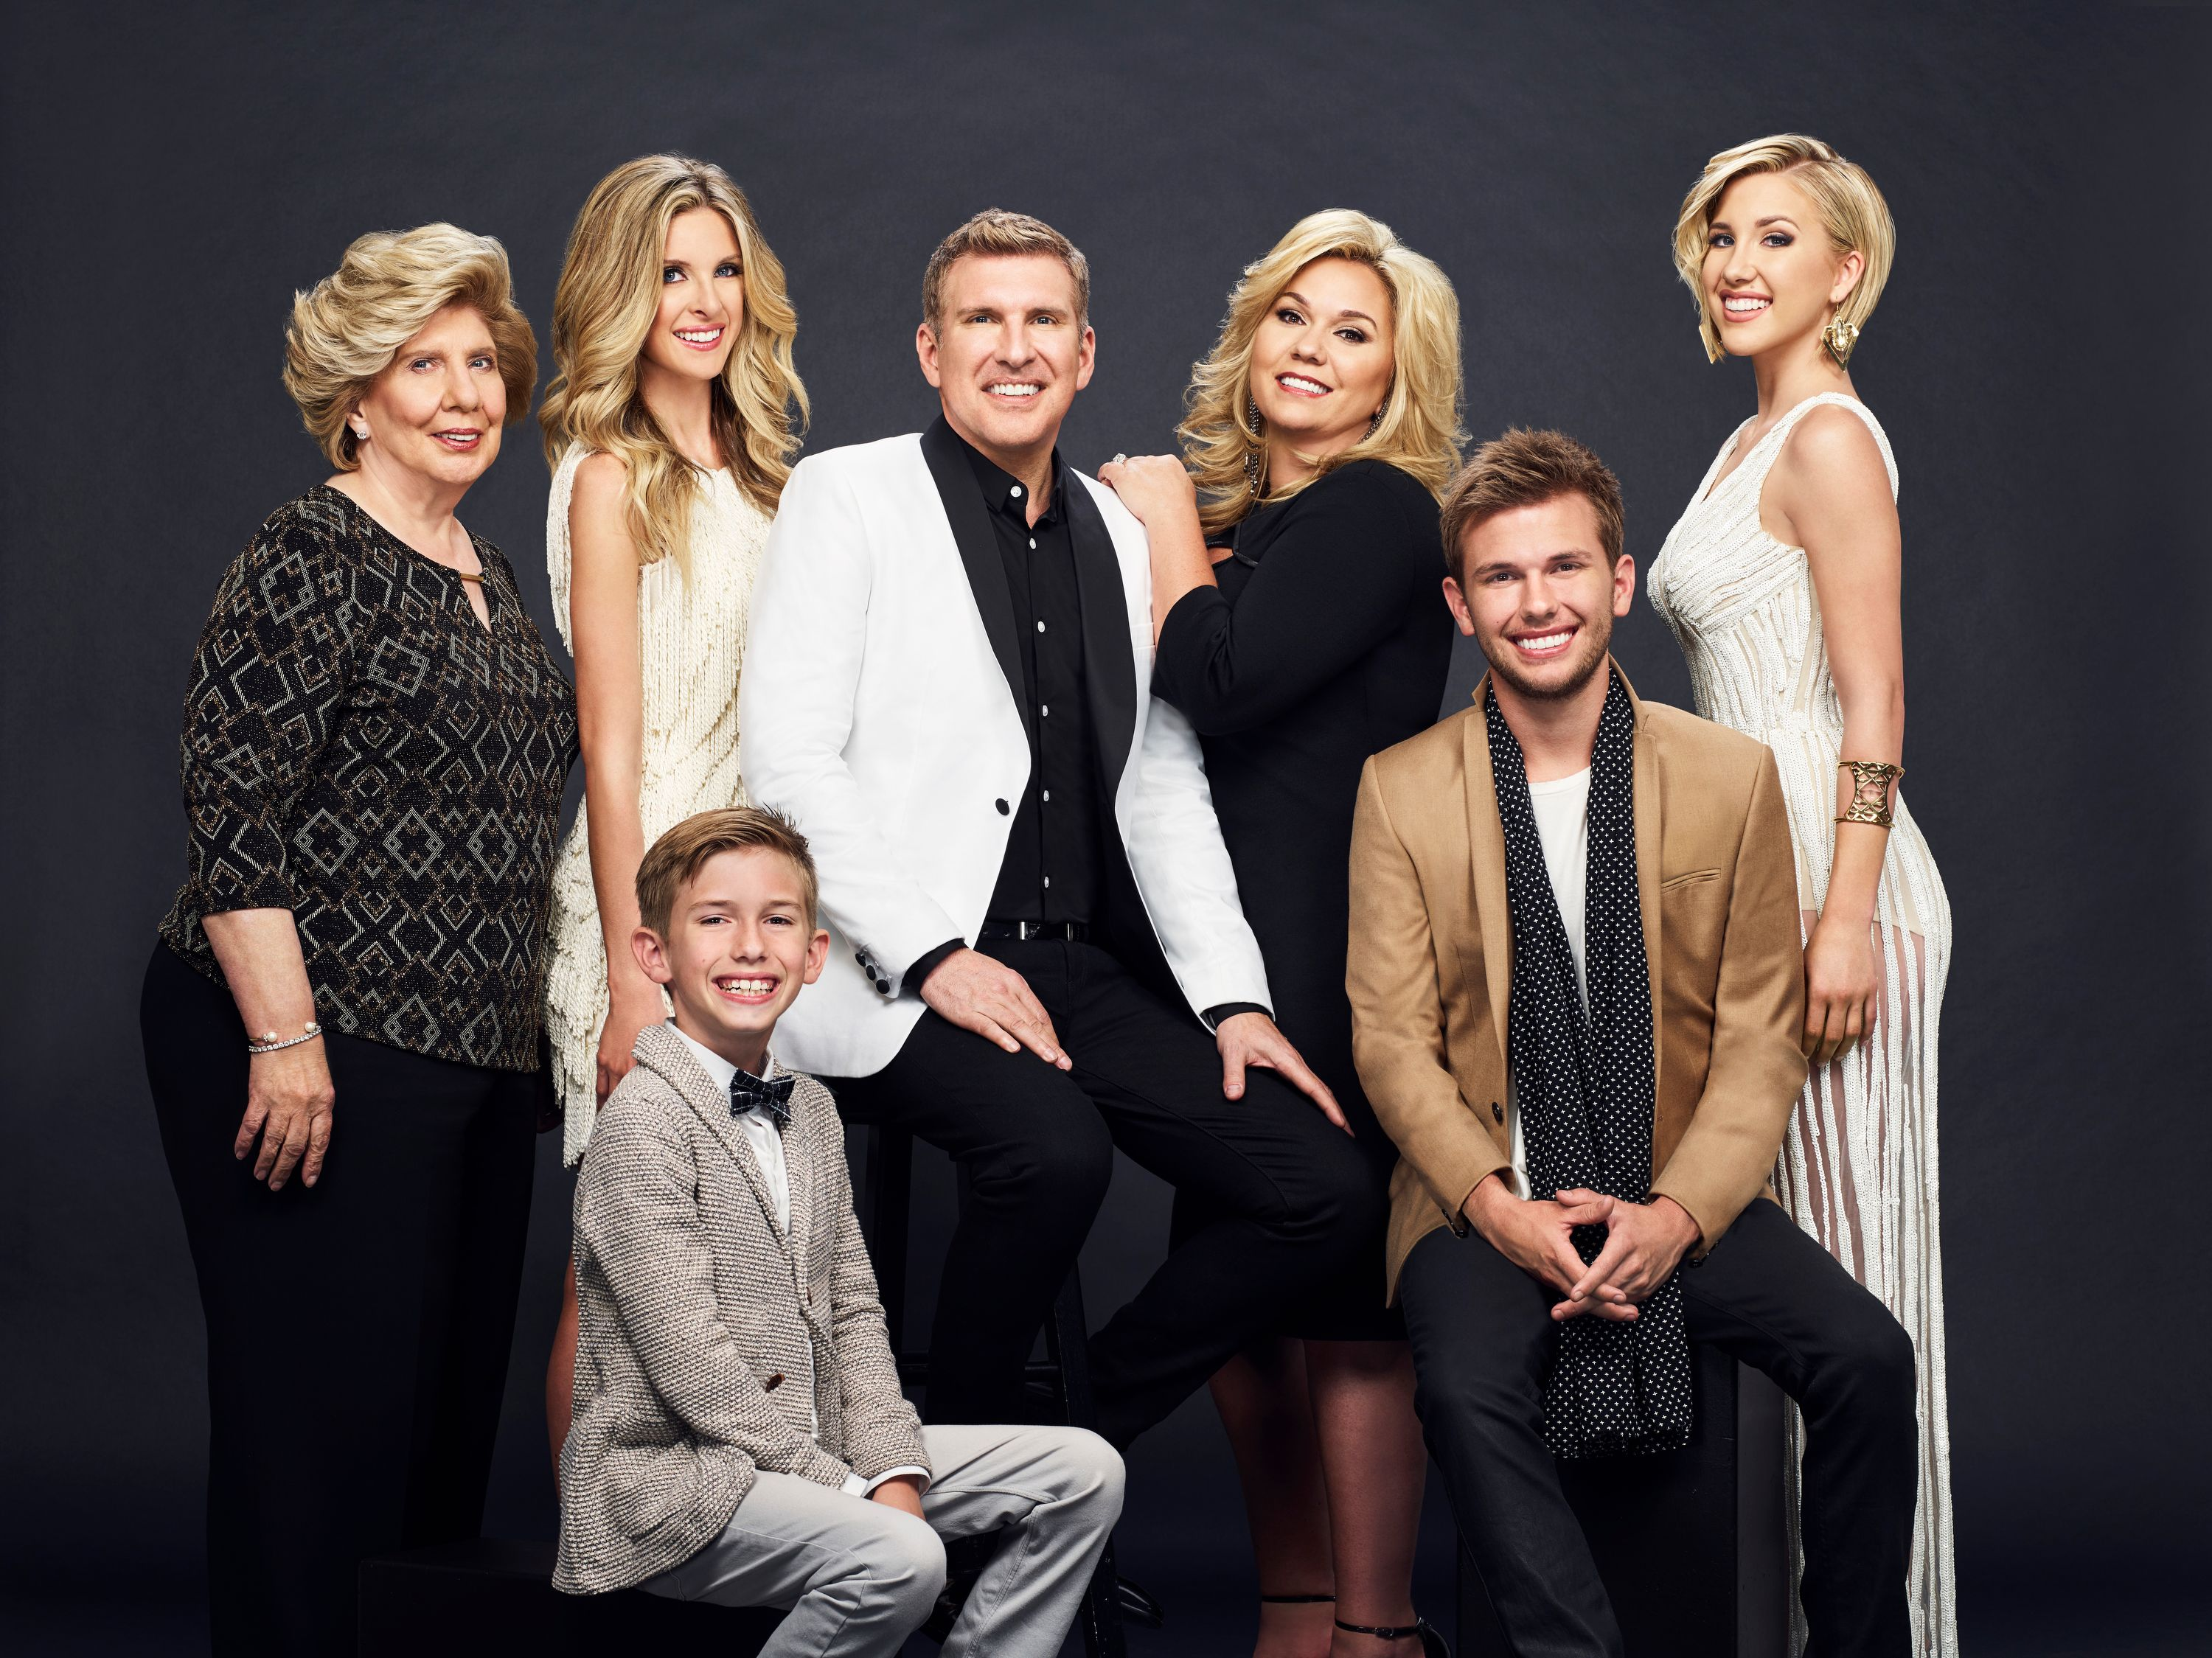 Faye Chrisley, Lindsie Chrisley Campbell, Grayson, Todd, Julie, Chase, and Savannah Chrisley on March 17, 2016 | Photo: Getty Images